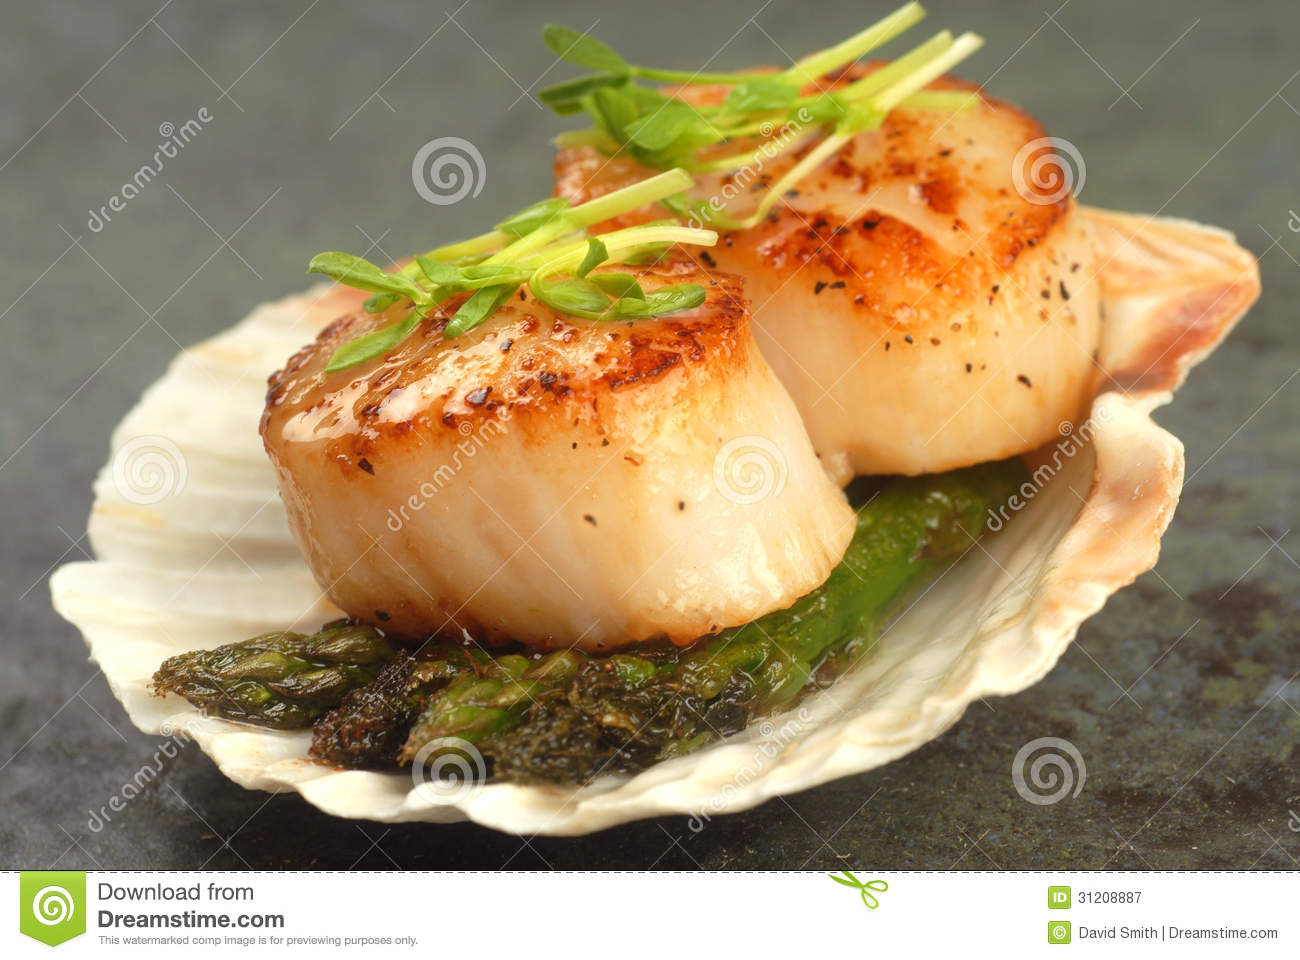 ... sea scallop with asparagus and pea shoots served on a scallop shell